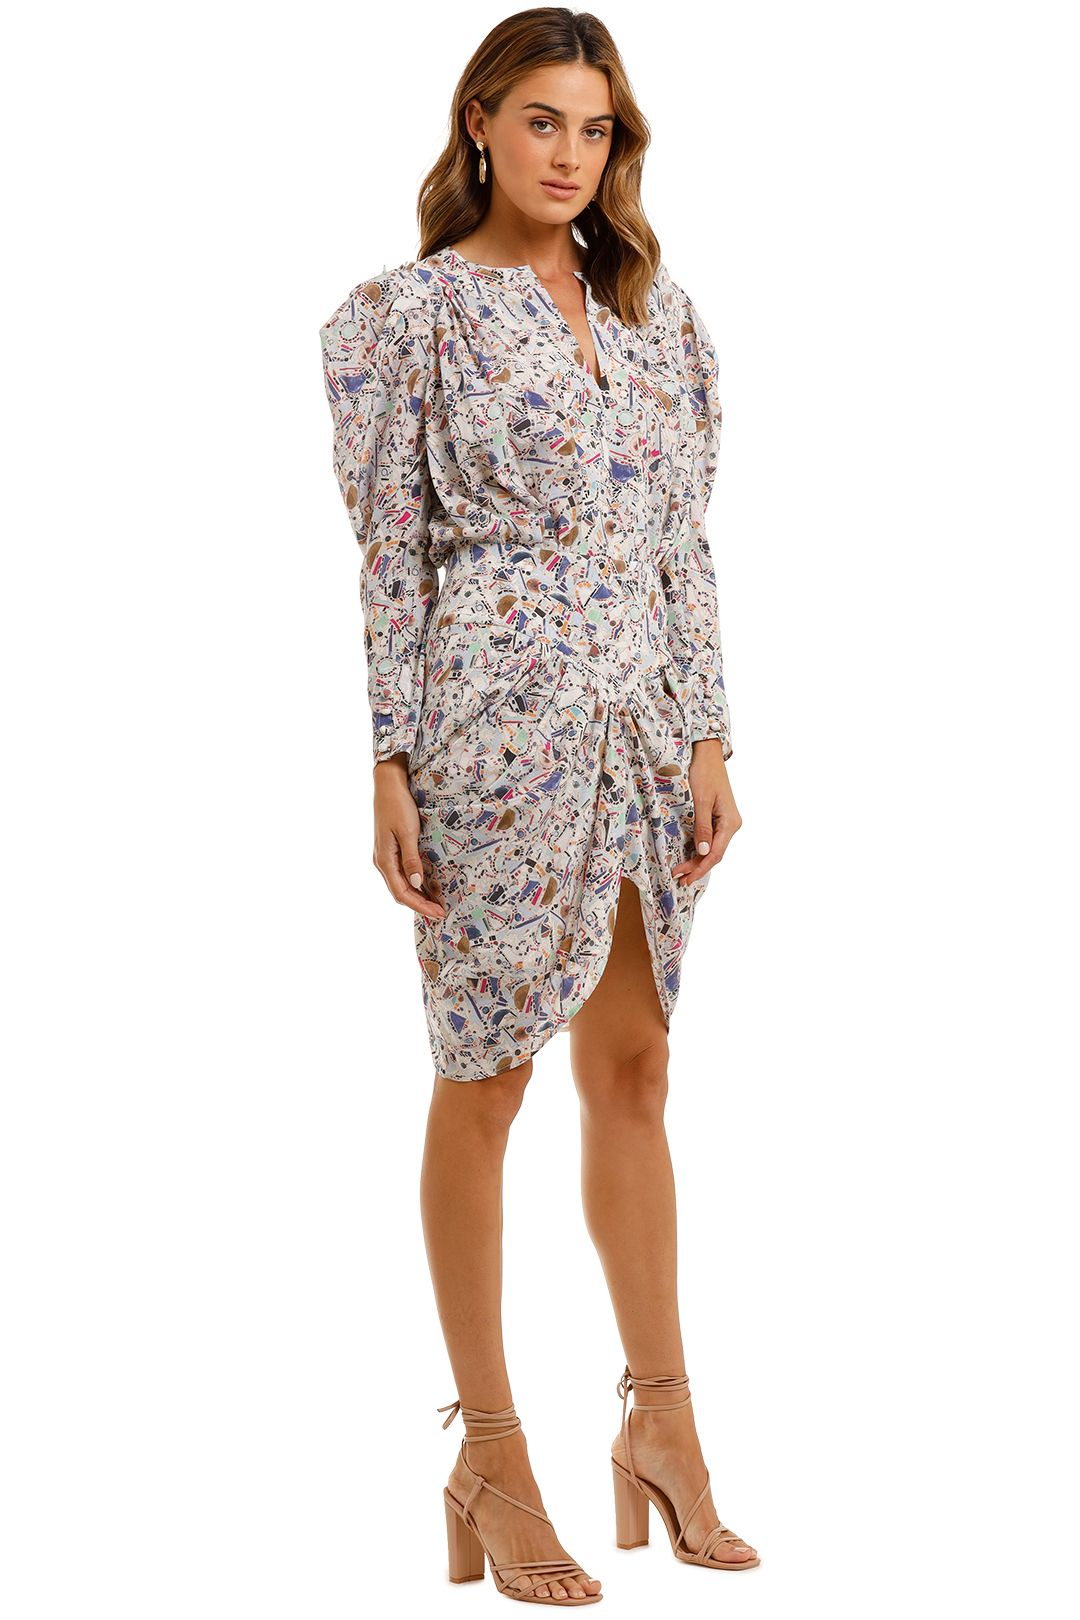 Isabel Marant Margaretia Short Dress long sleeve